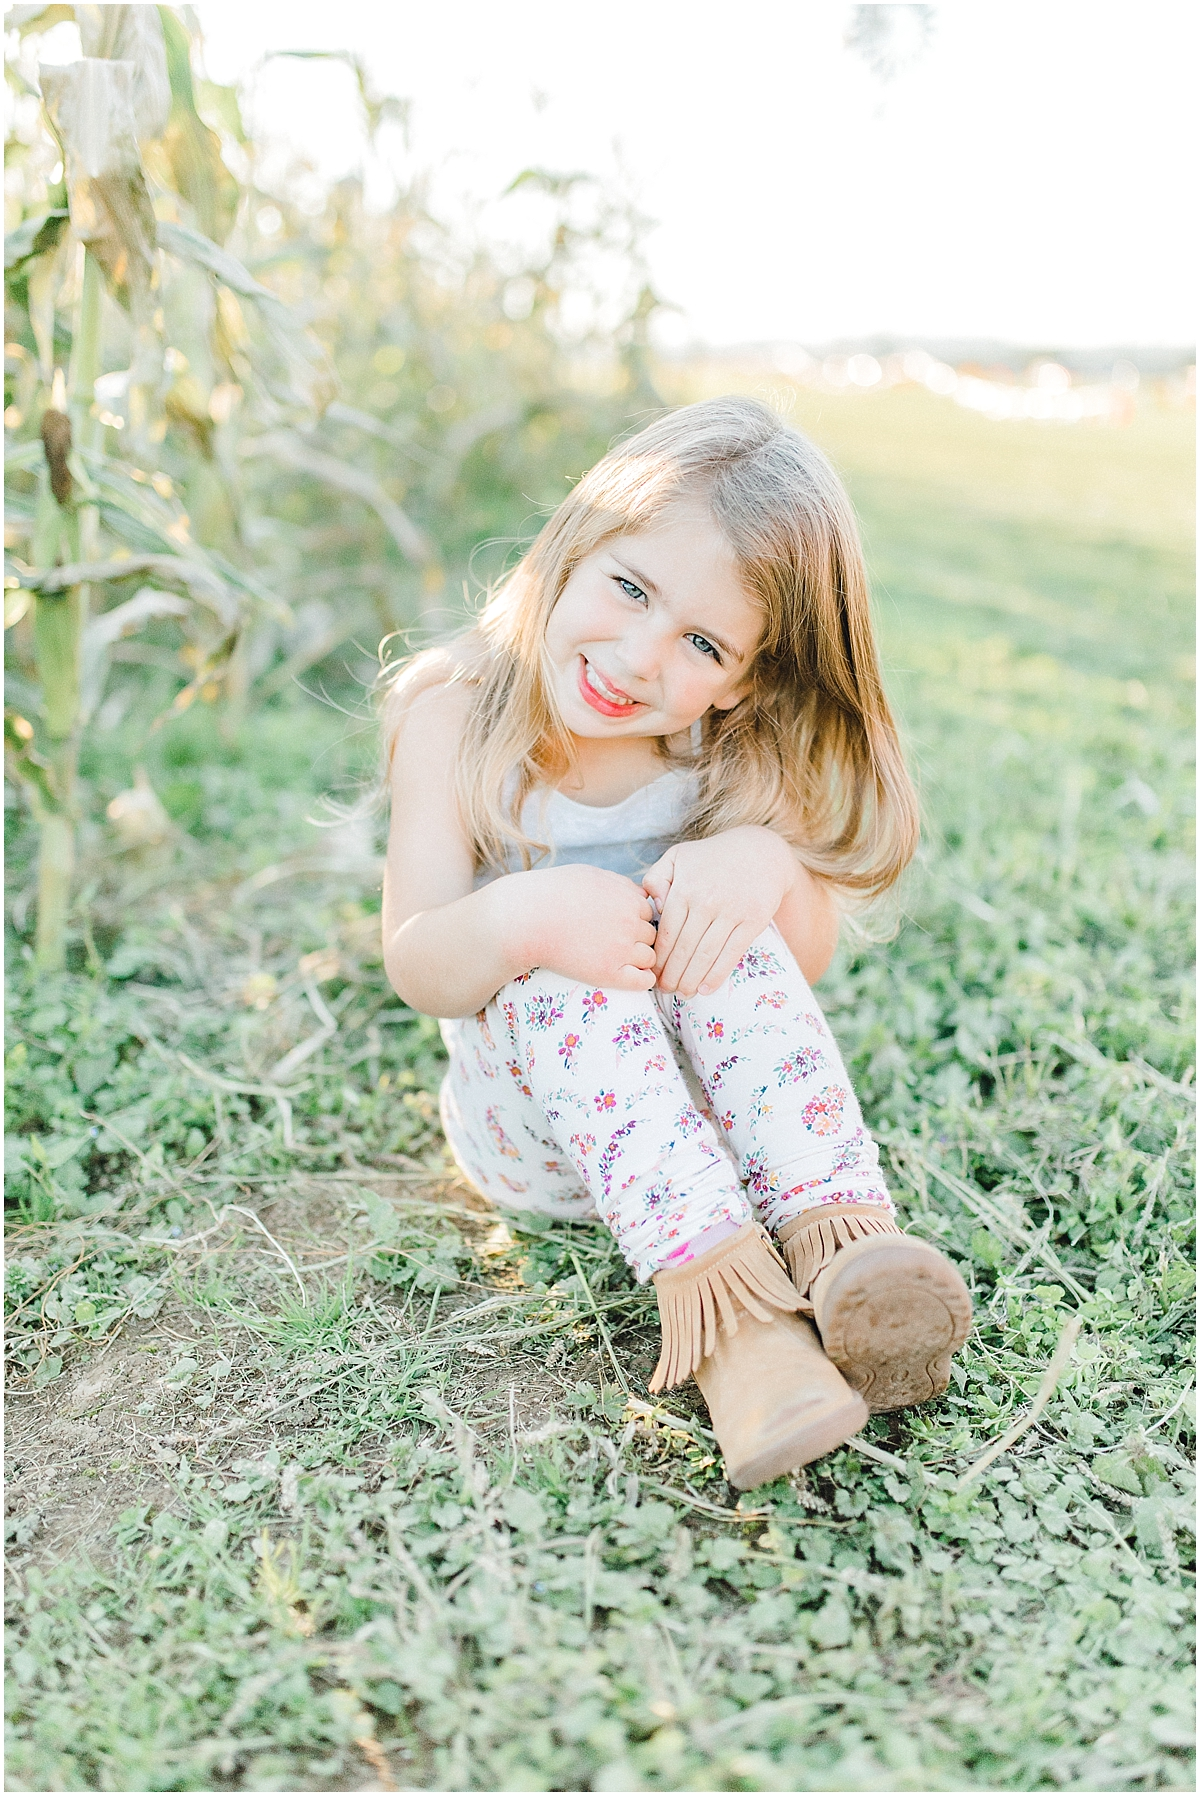 Pumpkin Patch Photo Shoot With Toddler and Mommy | Emma Rose Company Seattle Portland Light and Airy Wedding Photographer | Kindred Presets | Film_0008.jpg